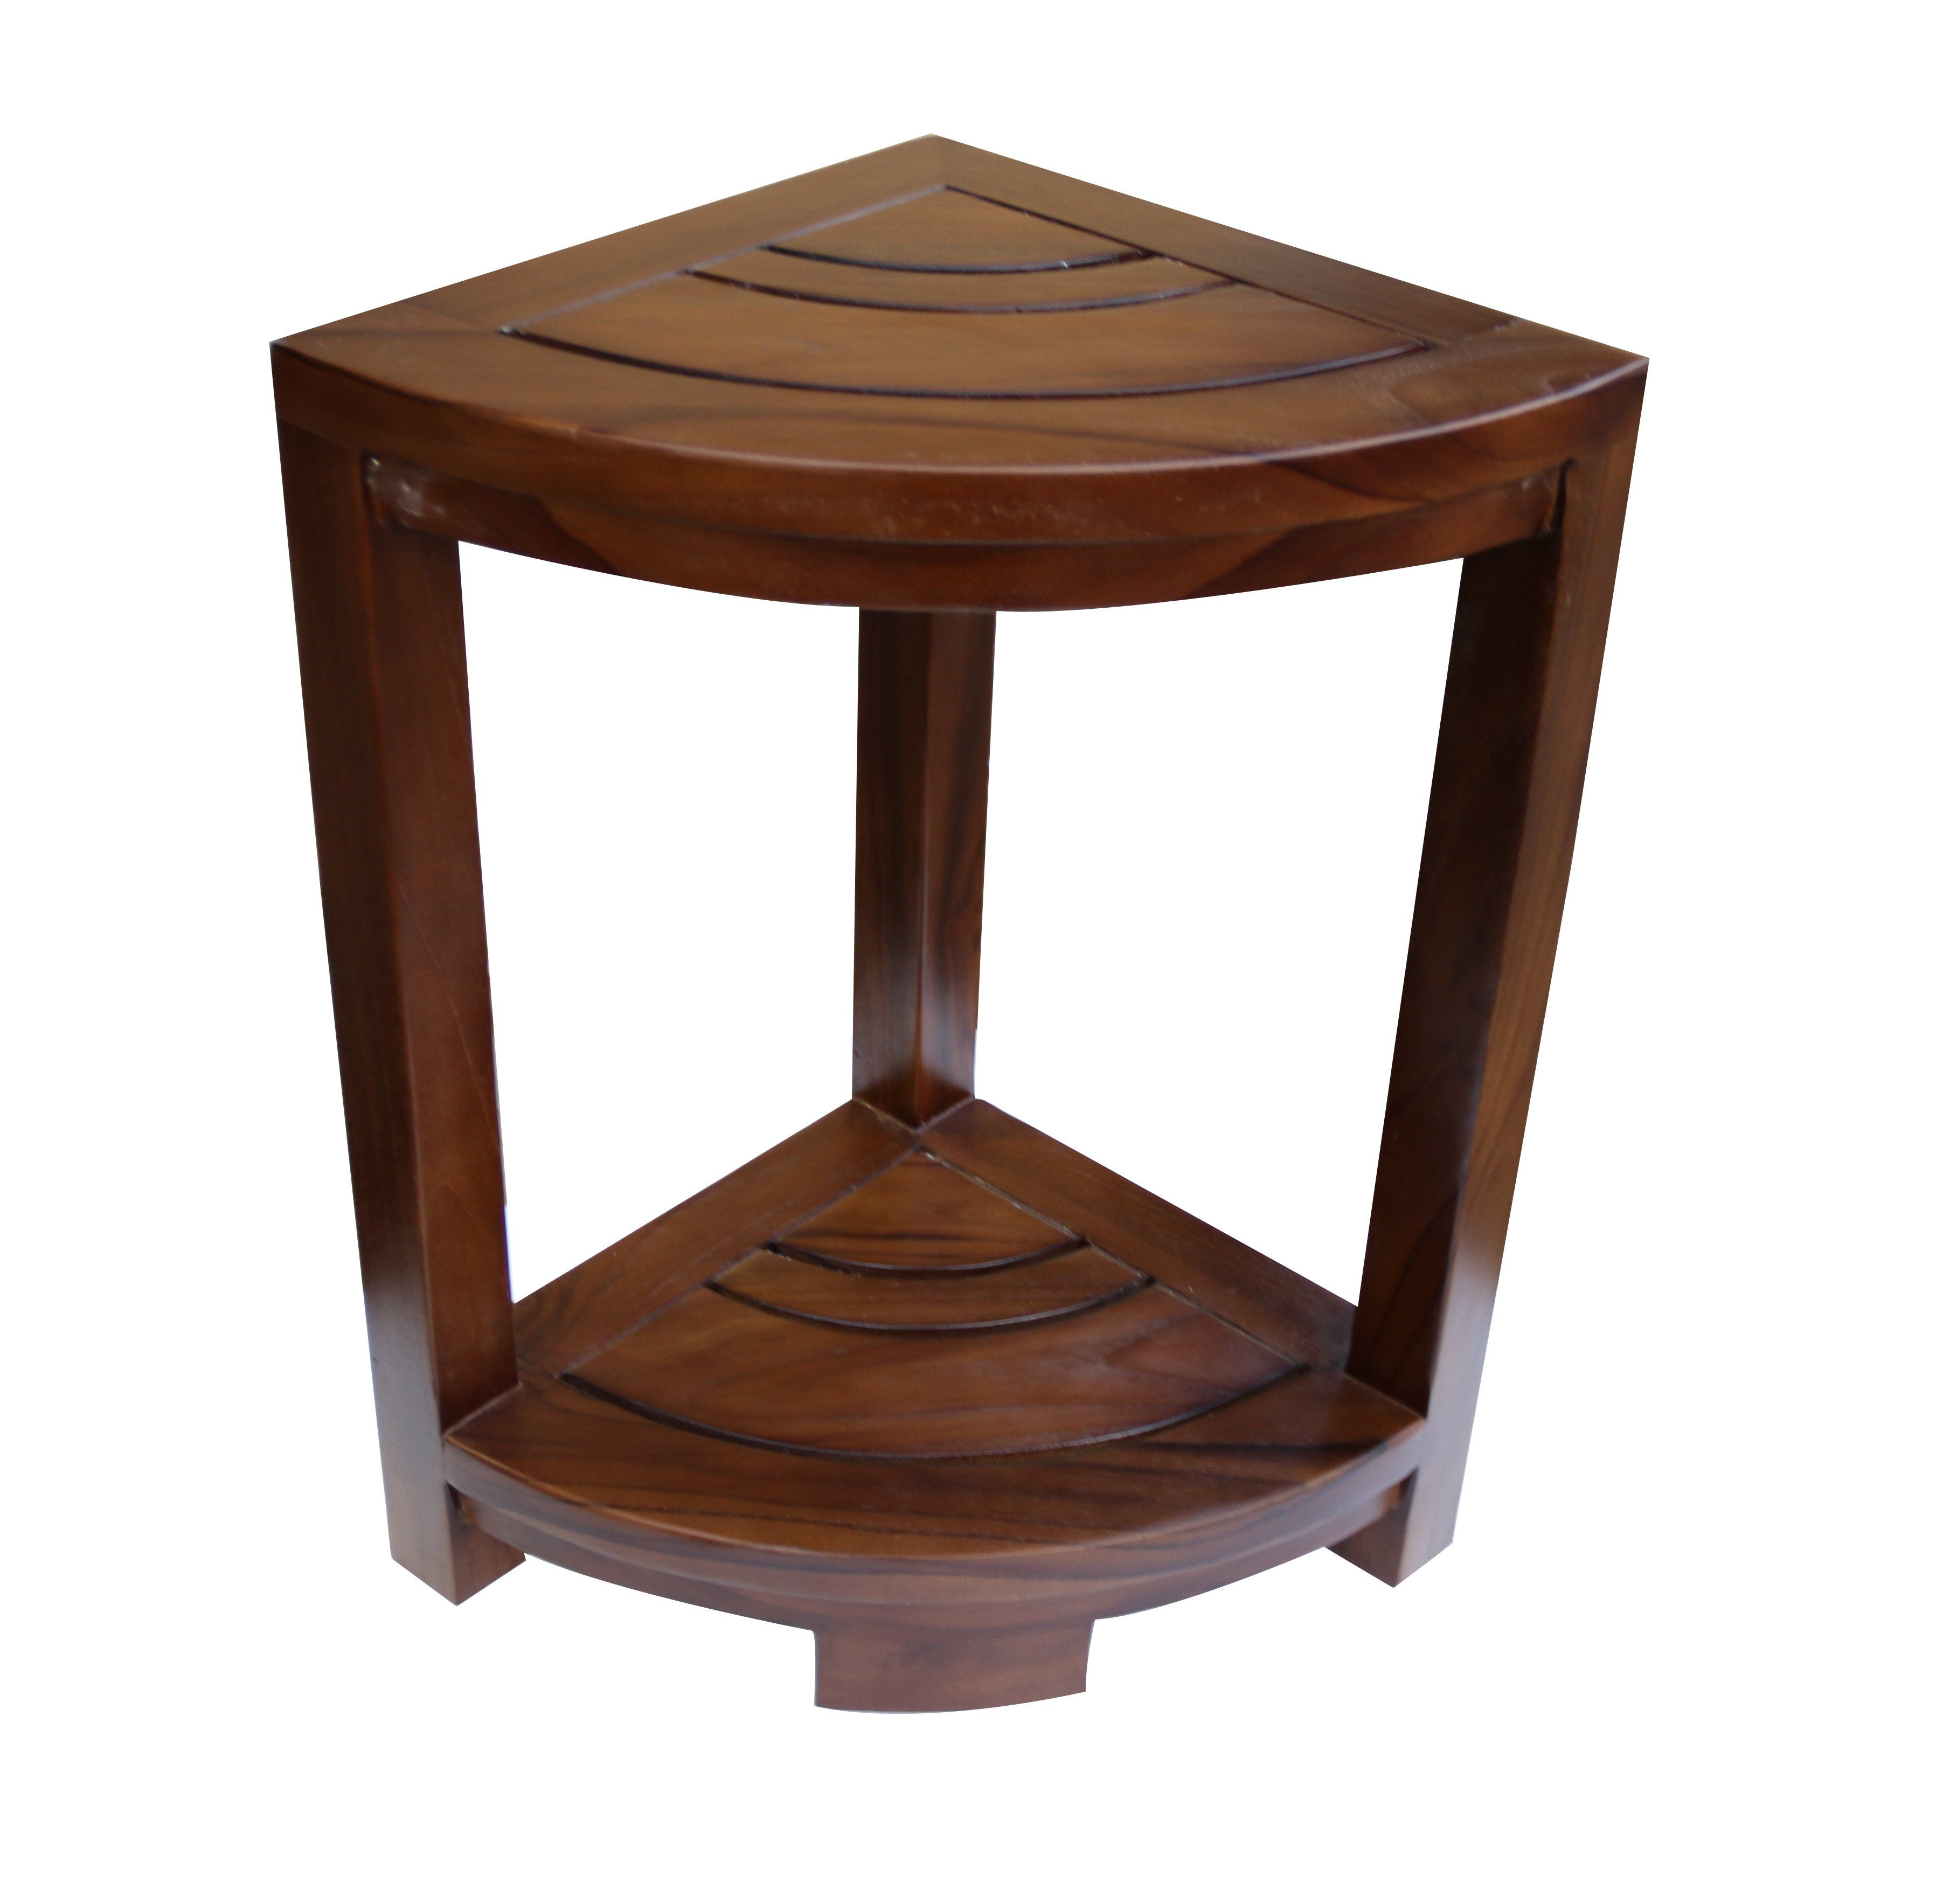 Strange Corner Teak Wood Bath Spa Shower Stool Corner Table Bench Gmtry Best Dining Table And Chair Ideas Images Gmtryco